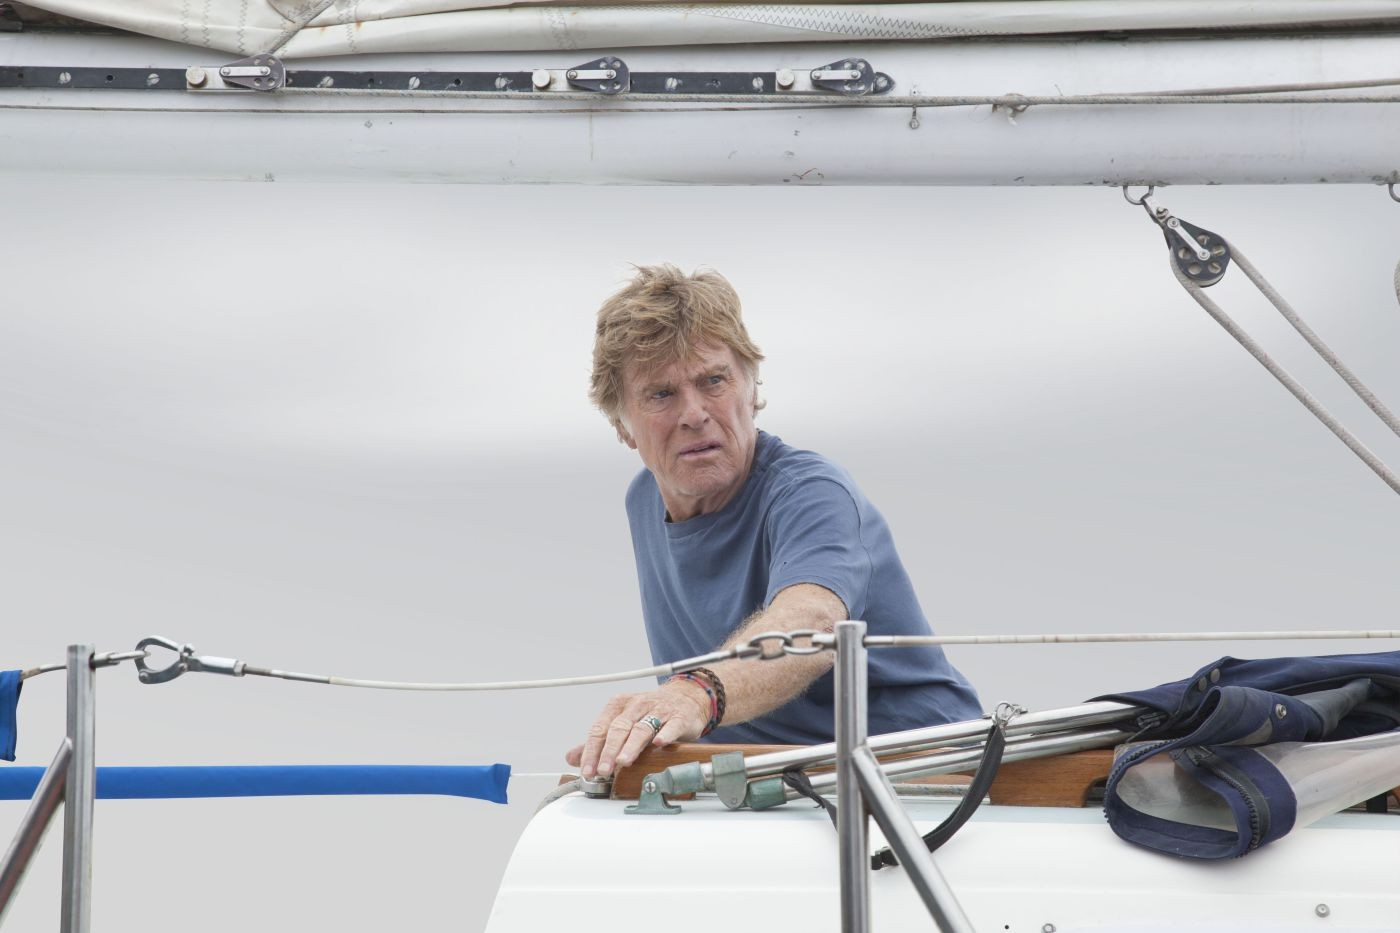 Robert Redford wages a solitary battle against the sea in All Is Lost